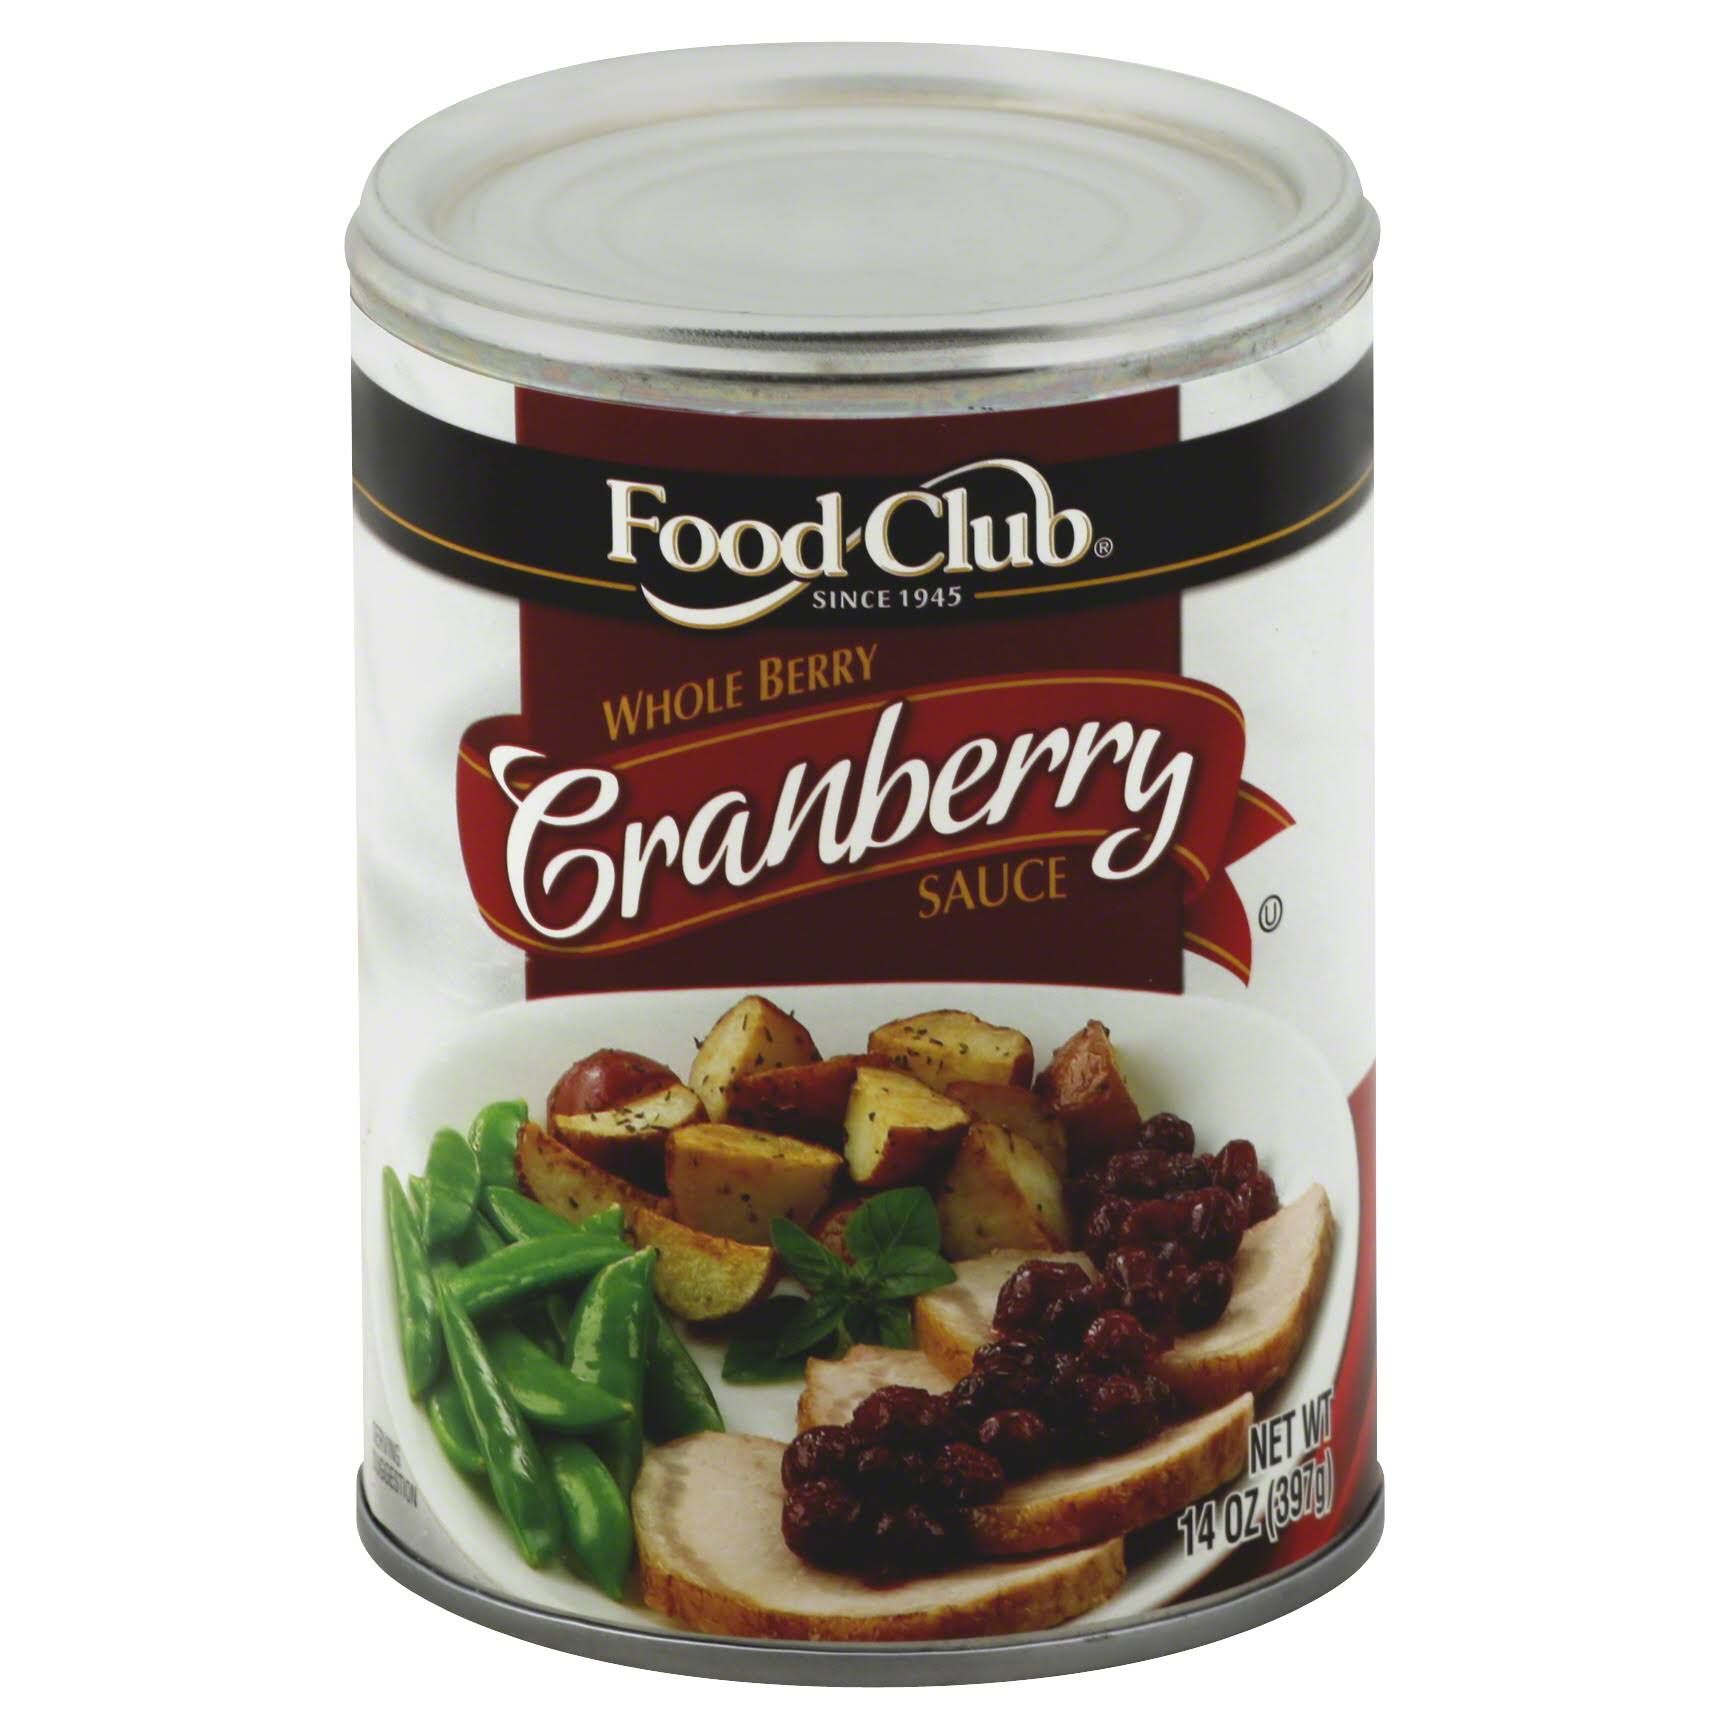 Food Club Cranberry Sauce, Whole Berry - 14 oz